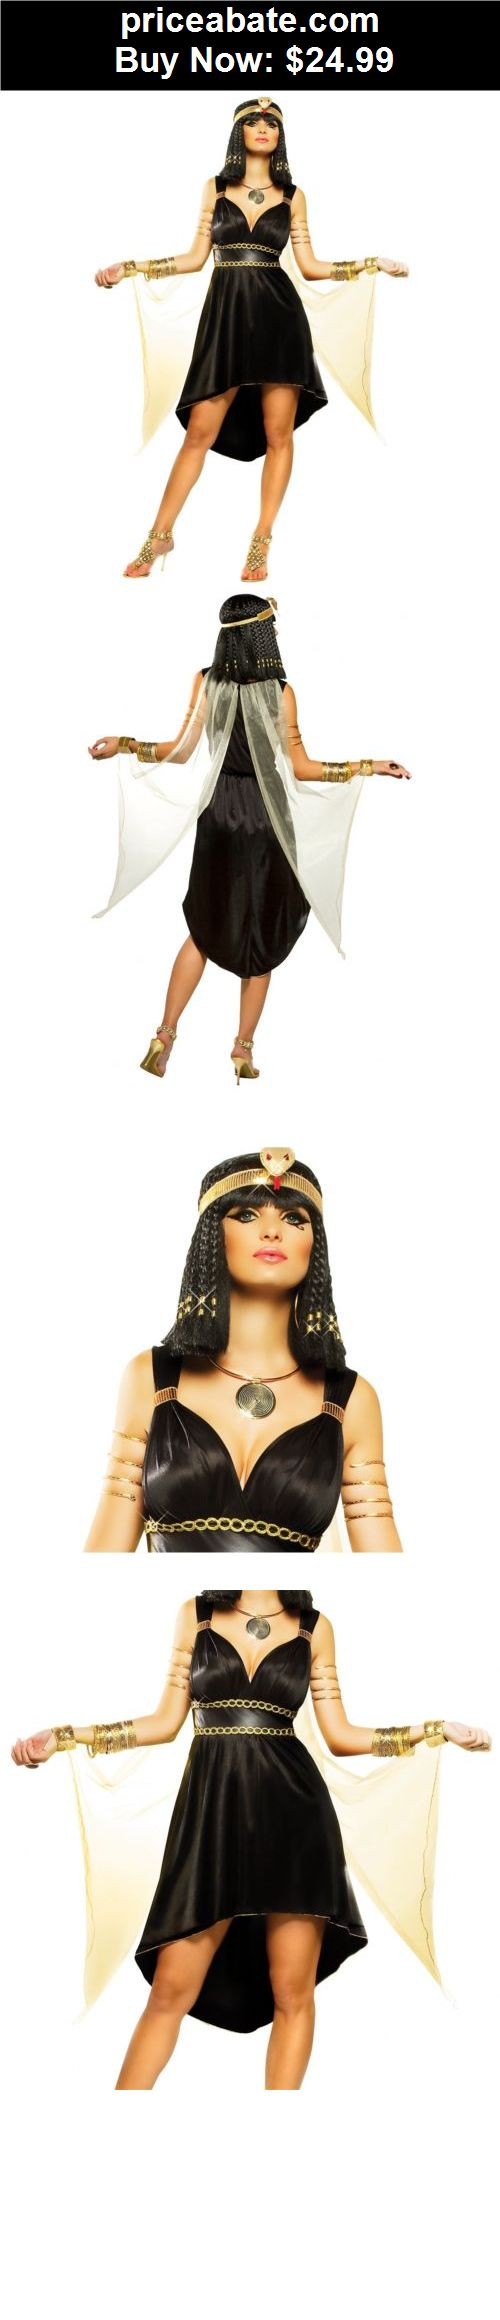 Women-Costumes: Sexy Cleopatra Costume Adult Womens Egyptian Halloween Fancy Dress - BUY IT NOW ONLY $24.99